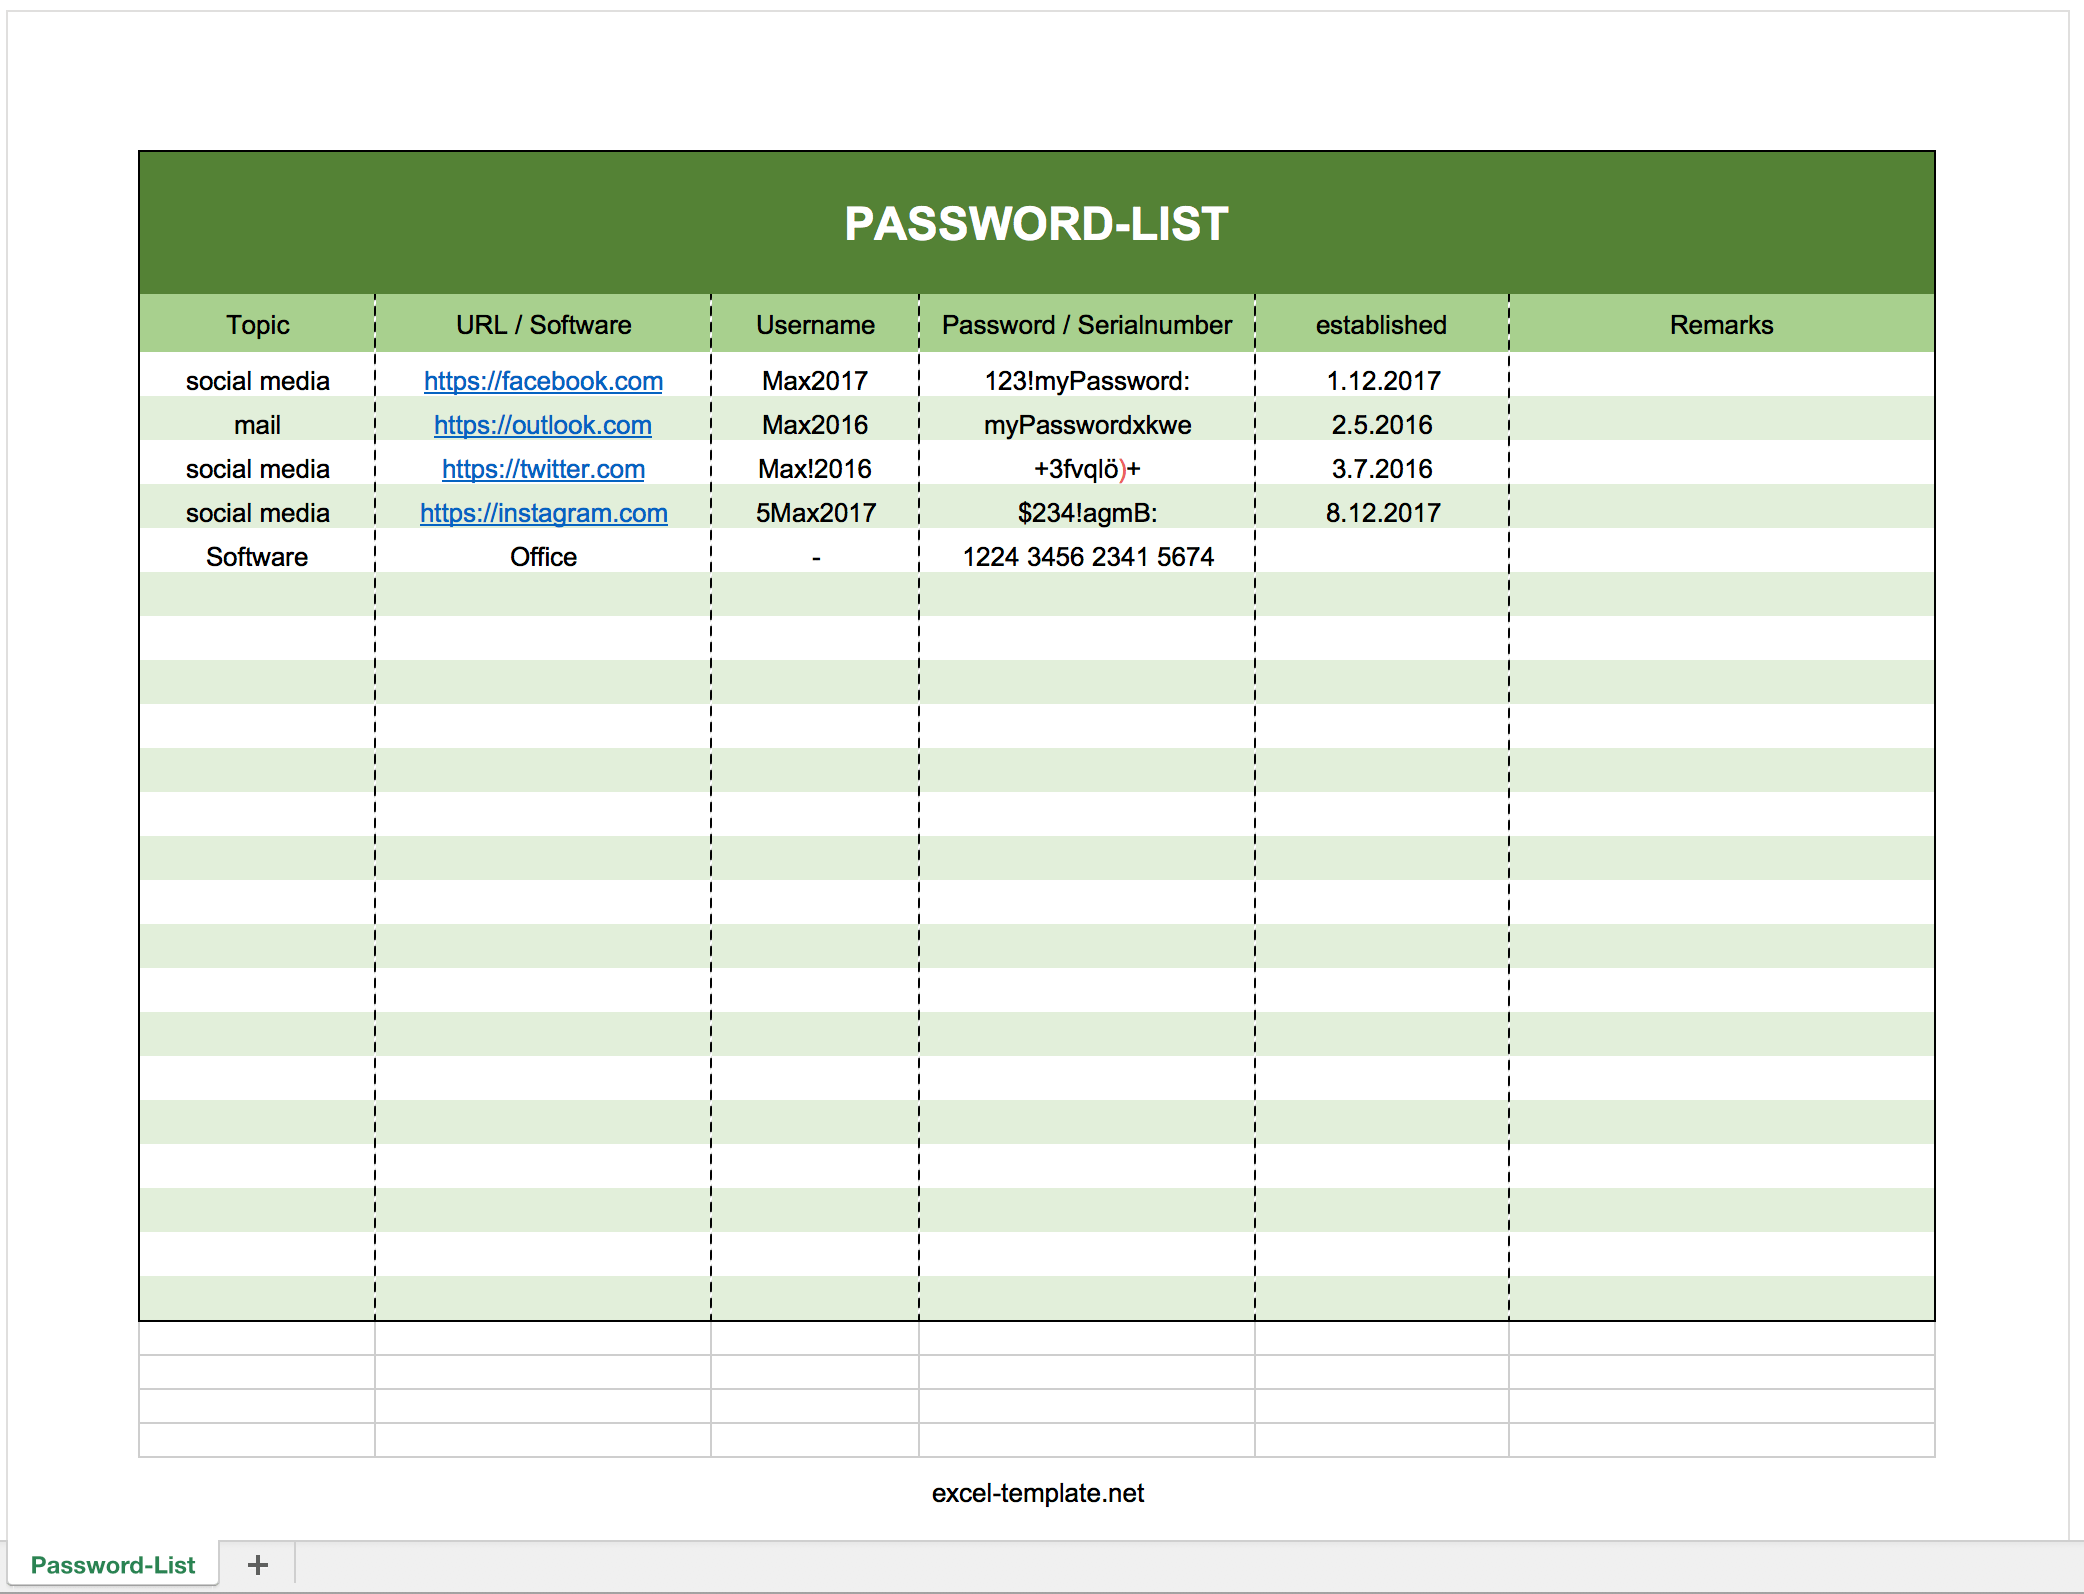 why is my excel document seen as malware